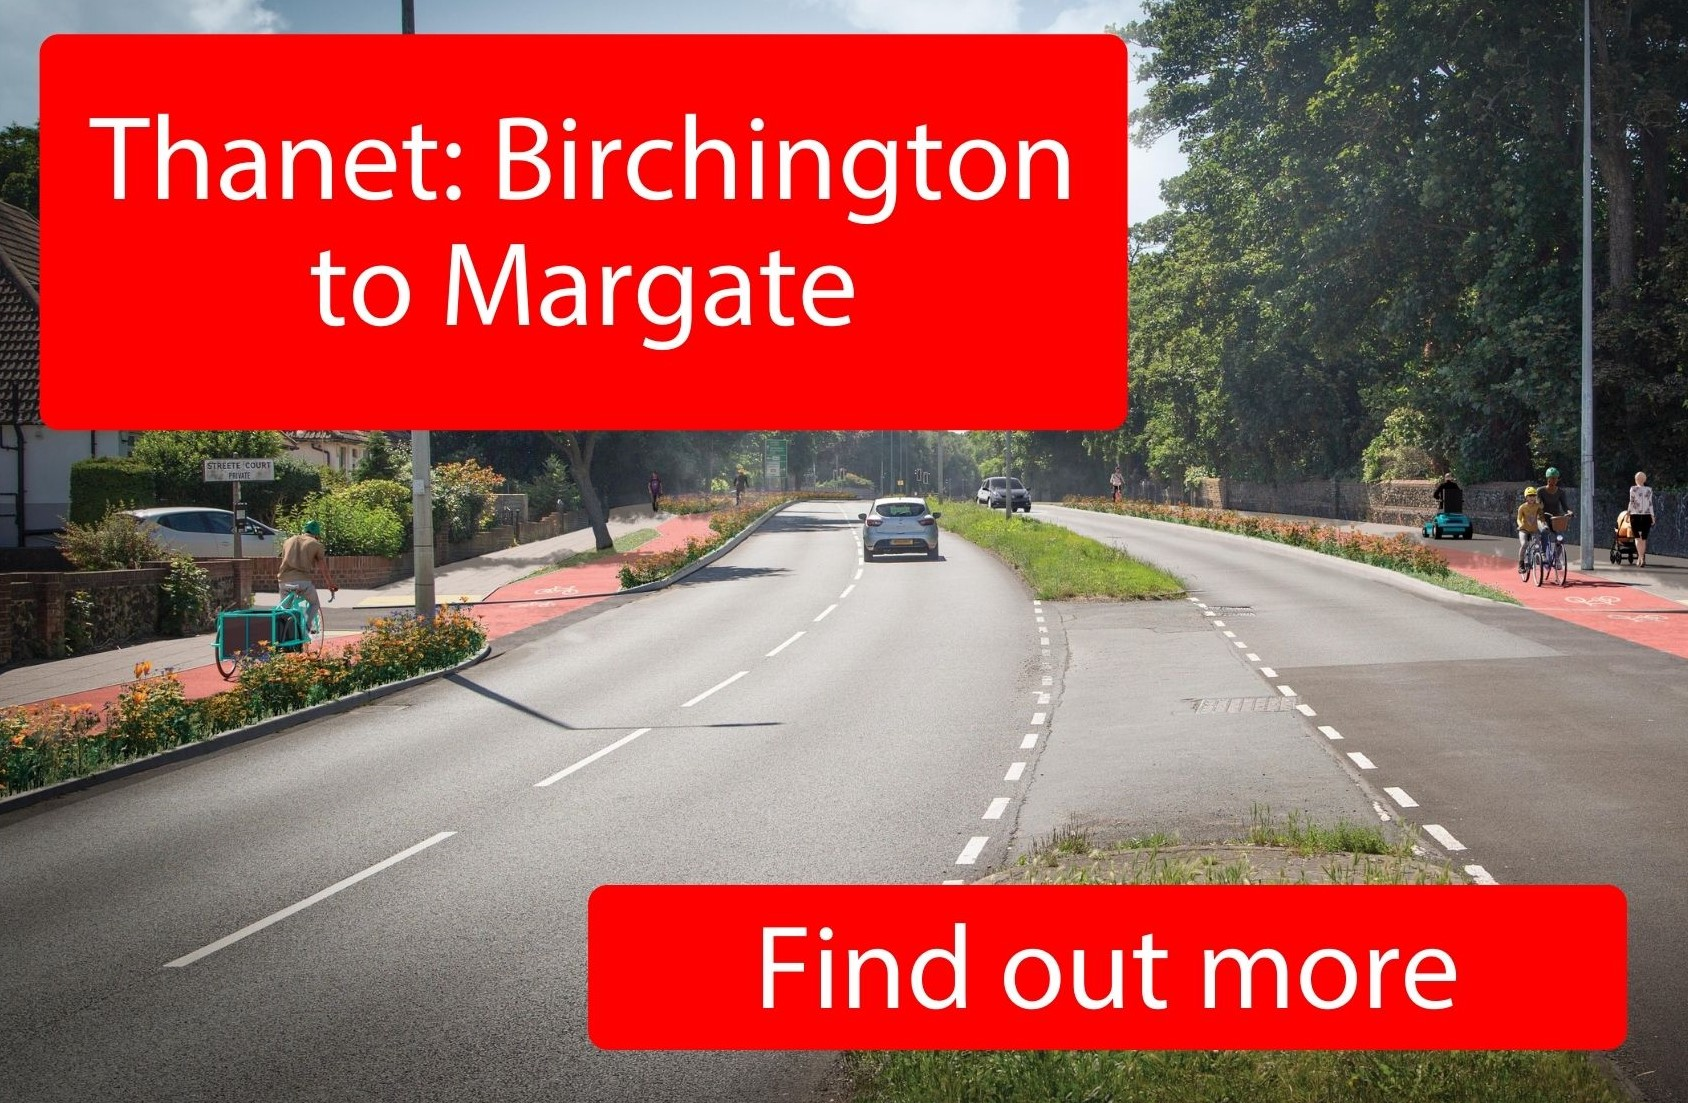 Thanet: Birchington to Margate - click here to find out more.